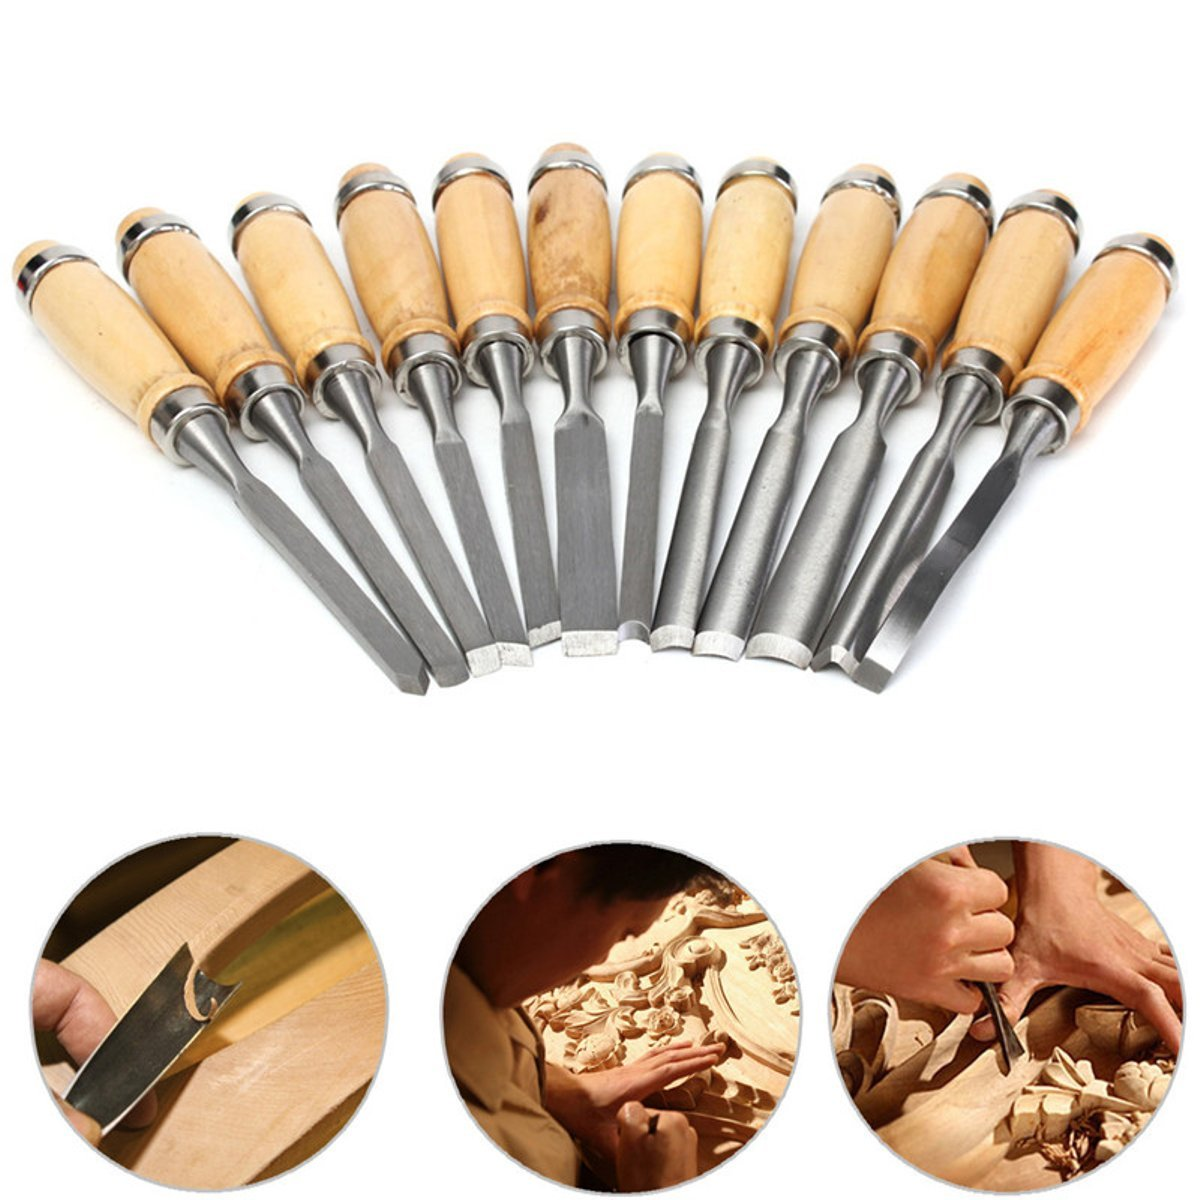 12Pcs Professional Wood Carving Hand Chisel Tool Woodworking Tools Set For Carpenter